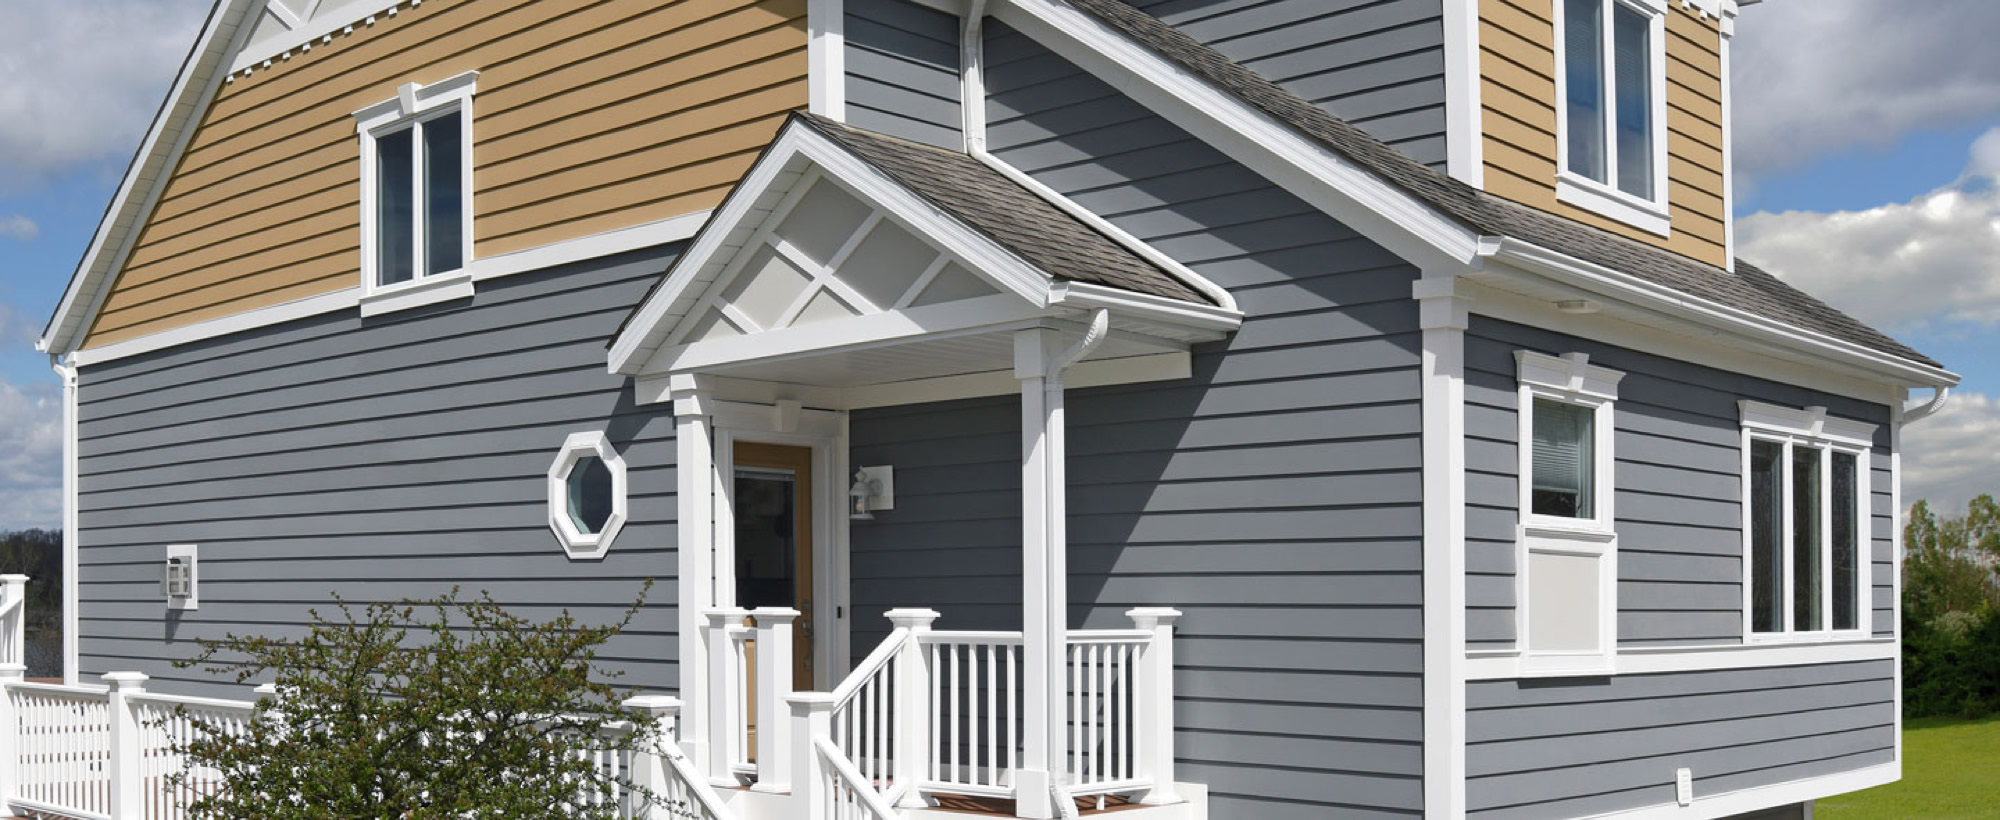 Roofing In Myrtle Beach Siding Services In Myrtle Beach